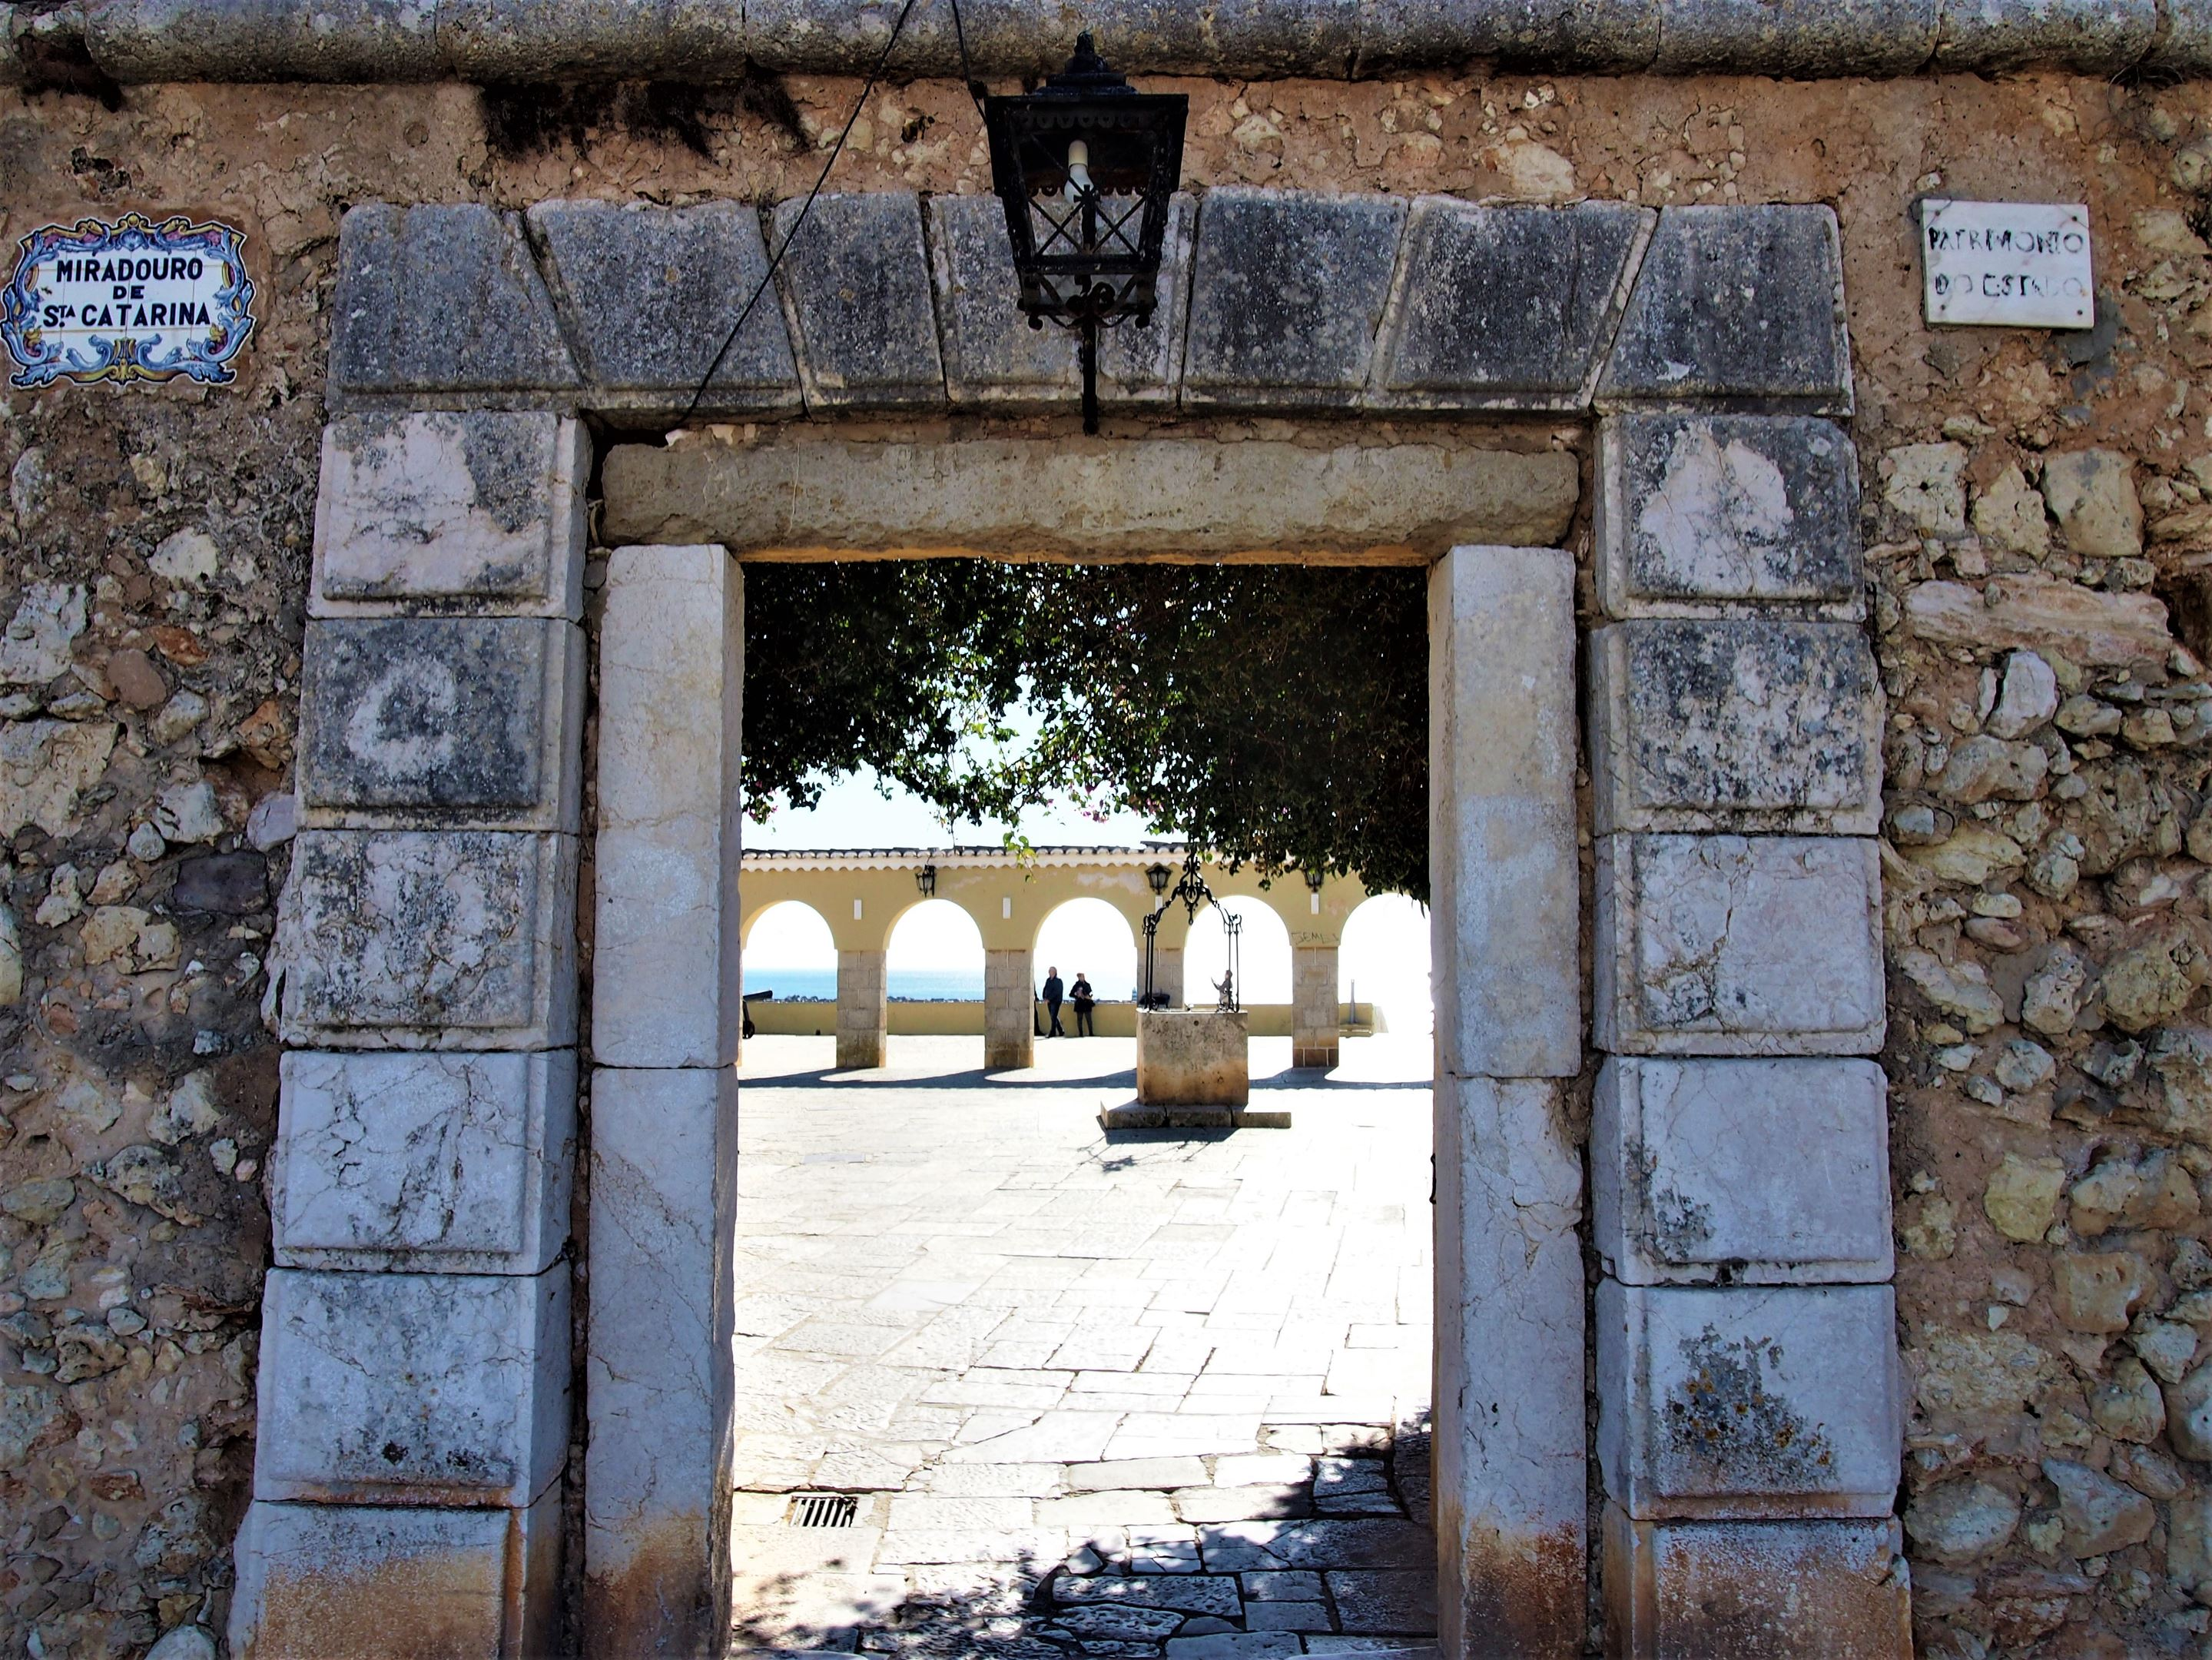 Miradouro (or fort) of Santa Catarina, Portimão - looking through the entrance out into the Atlantic ocean